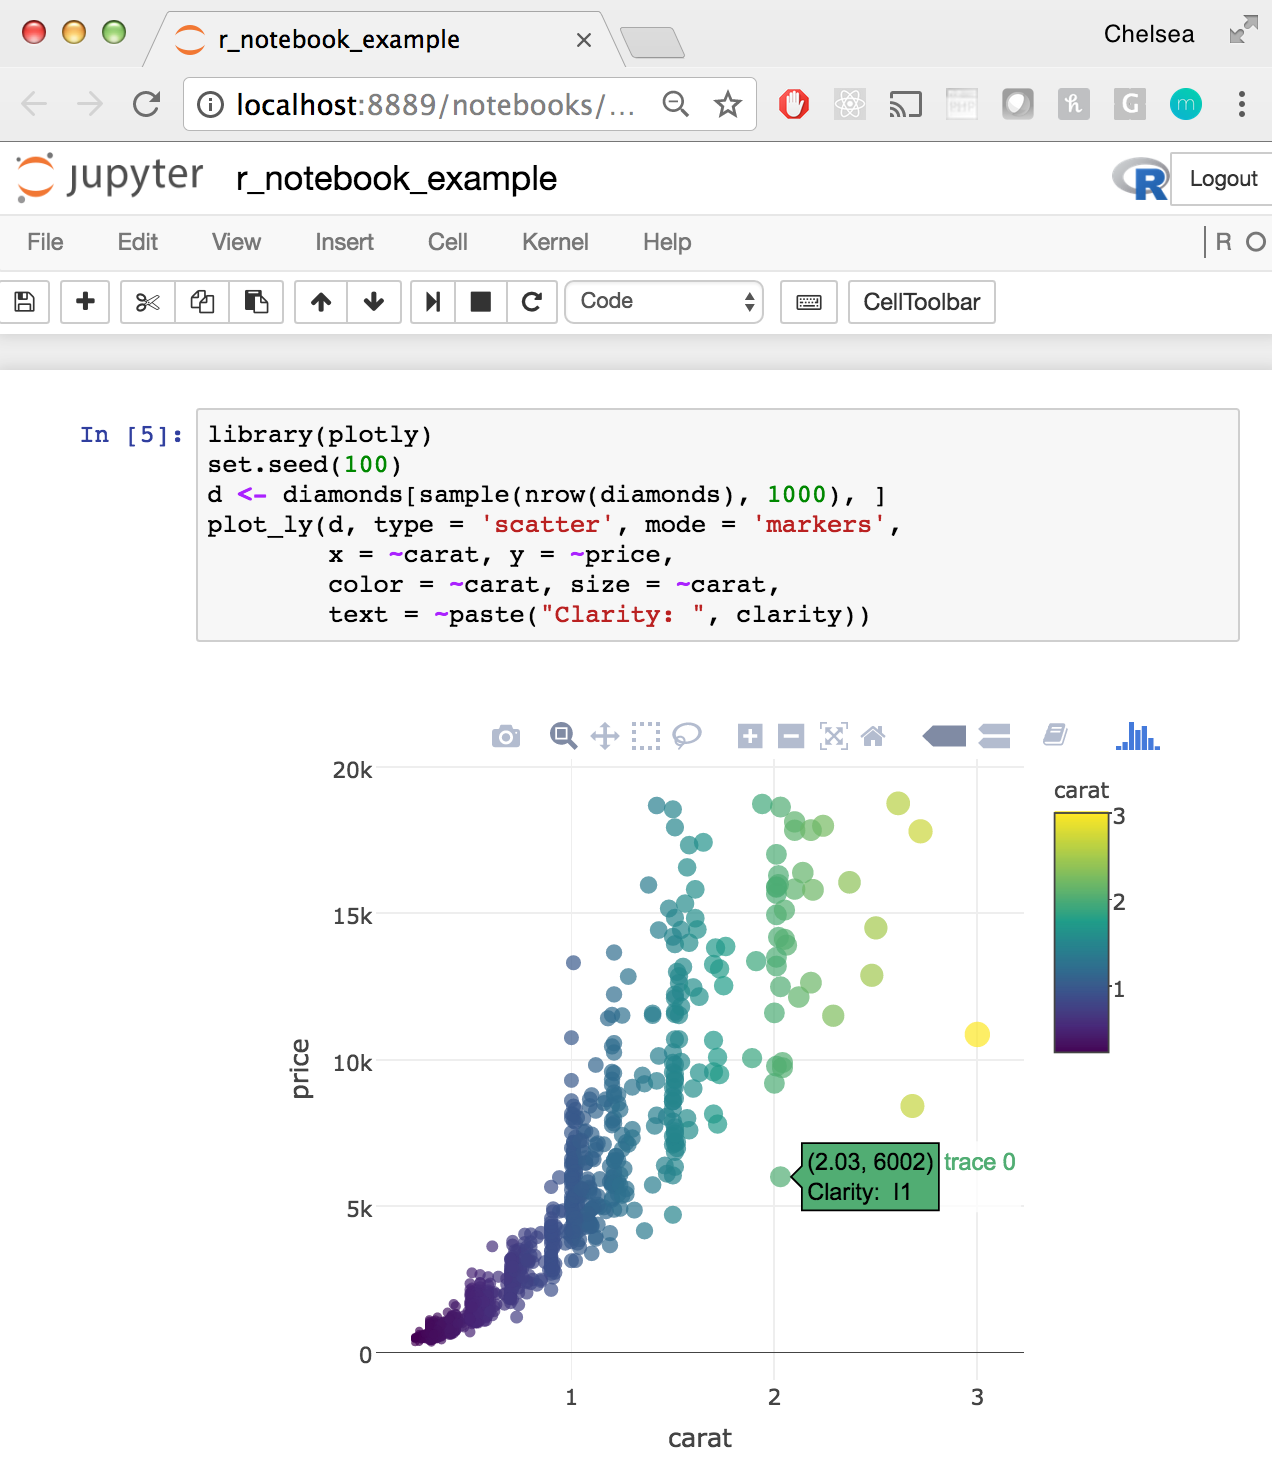 open jupyter notebook in chrome